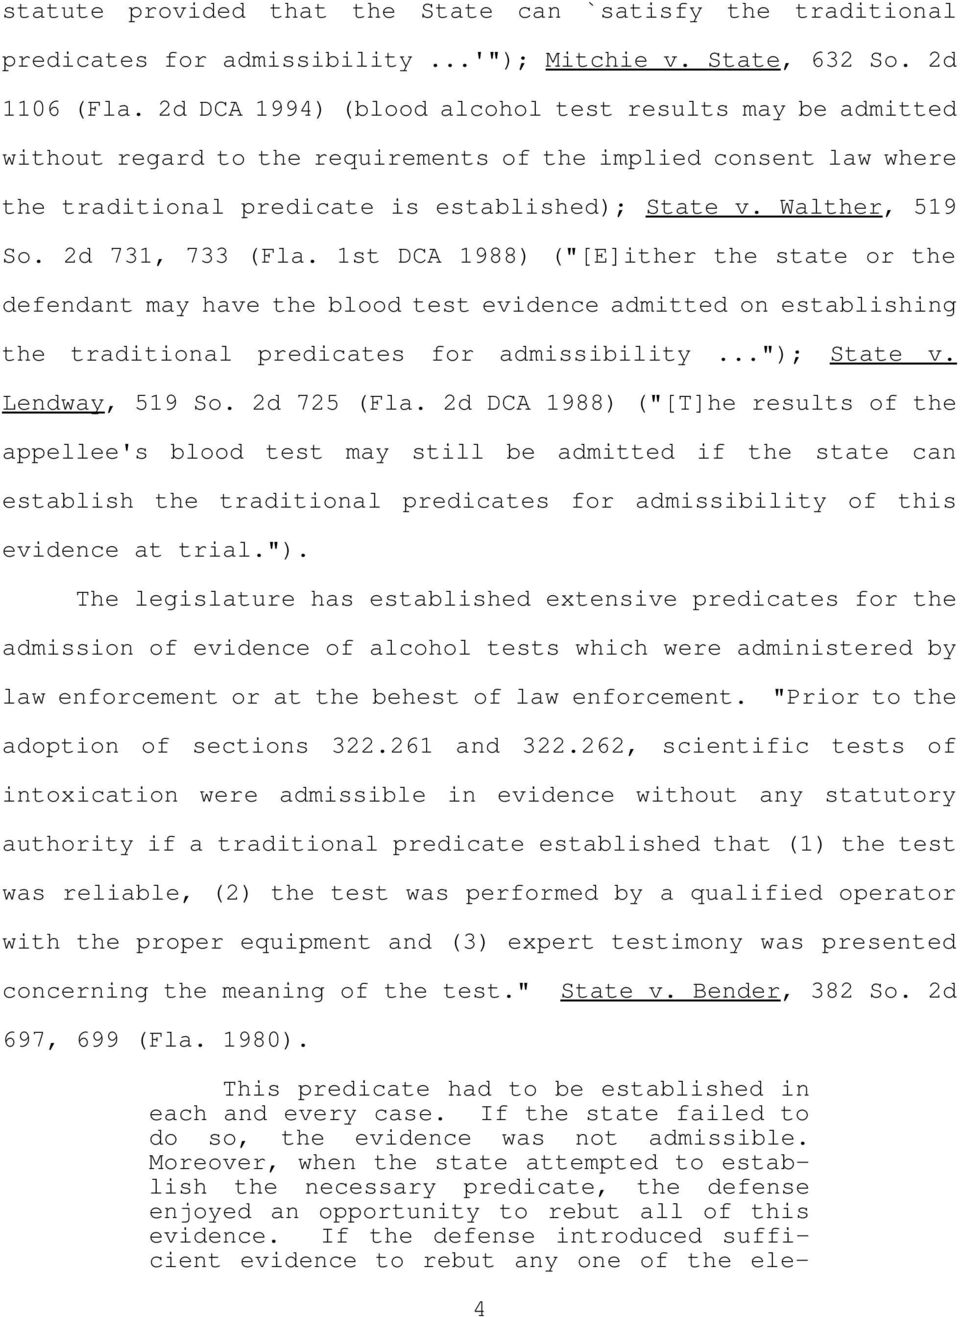 "2d 731, 733 (Fla. 1st DCA 1988) (""[E]ither the state or the defendant may have the blood test evidence admitted on establishing the traditional predicates for admissibility...""); State v."